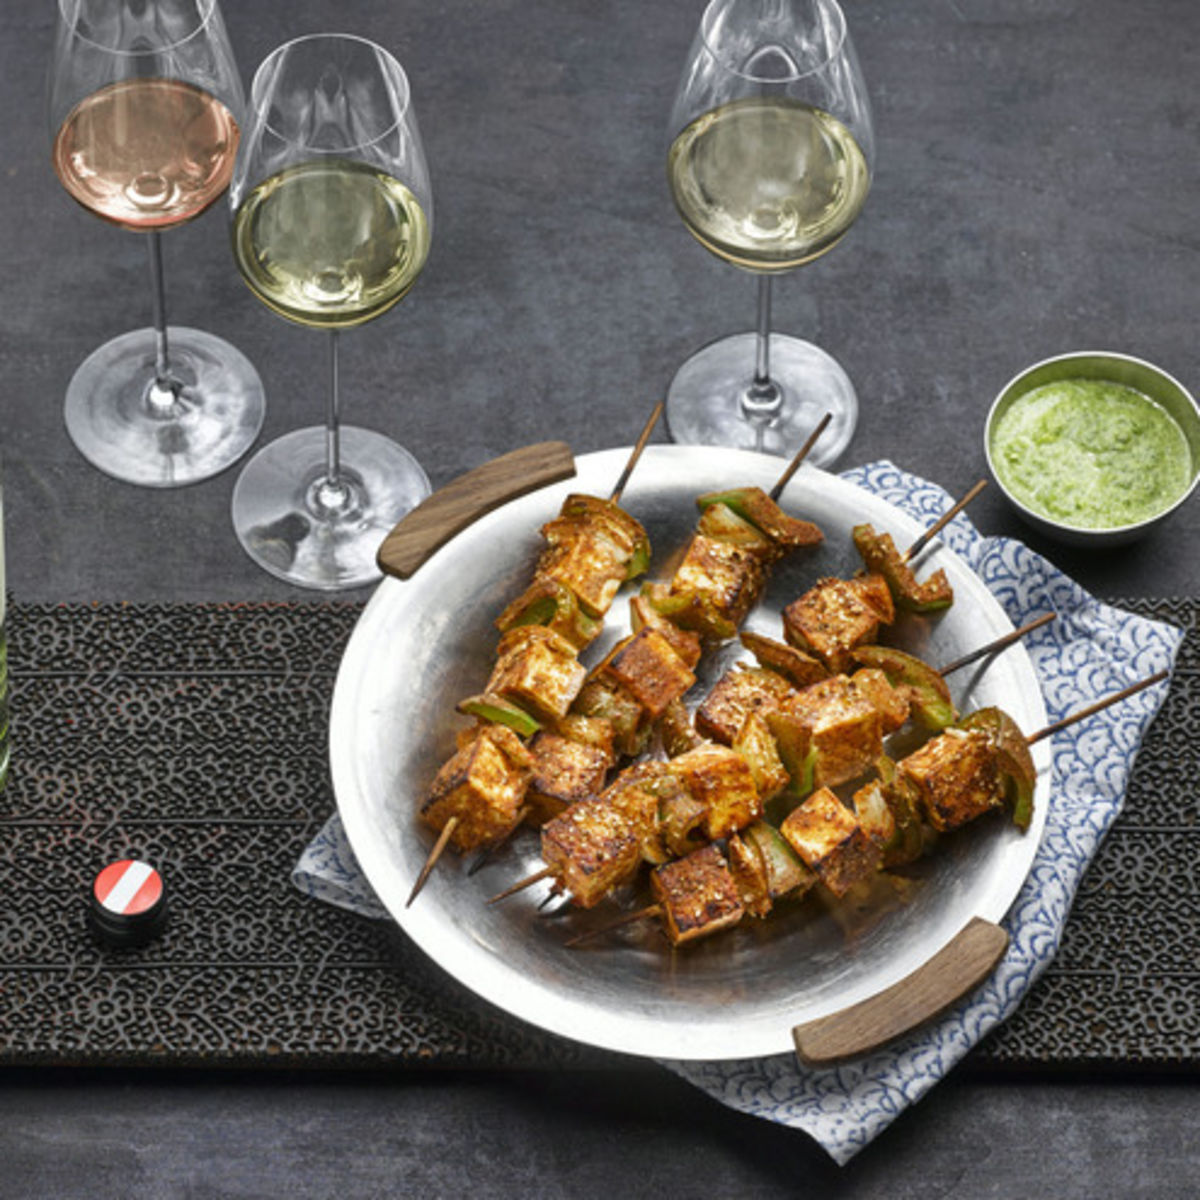 The picture shows the vegetarian dish Paneer Tikka and thre glasses, filled with white and rosé wine.